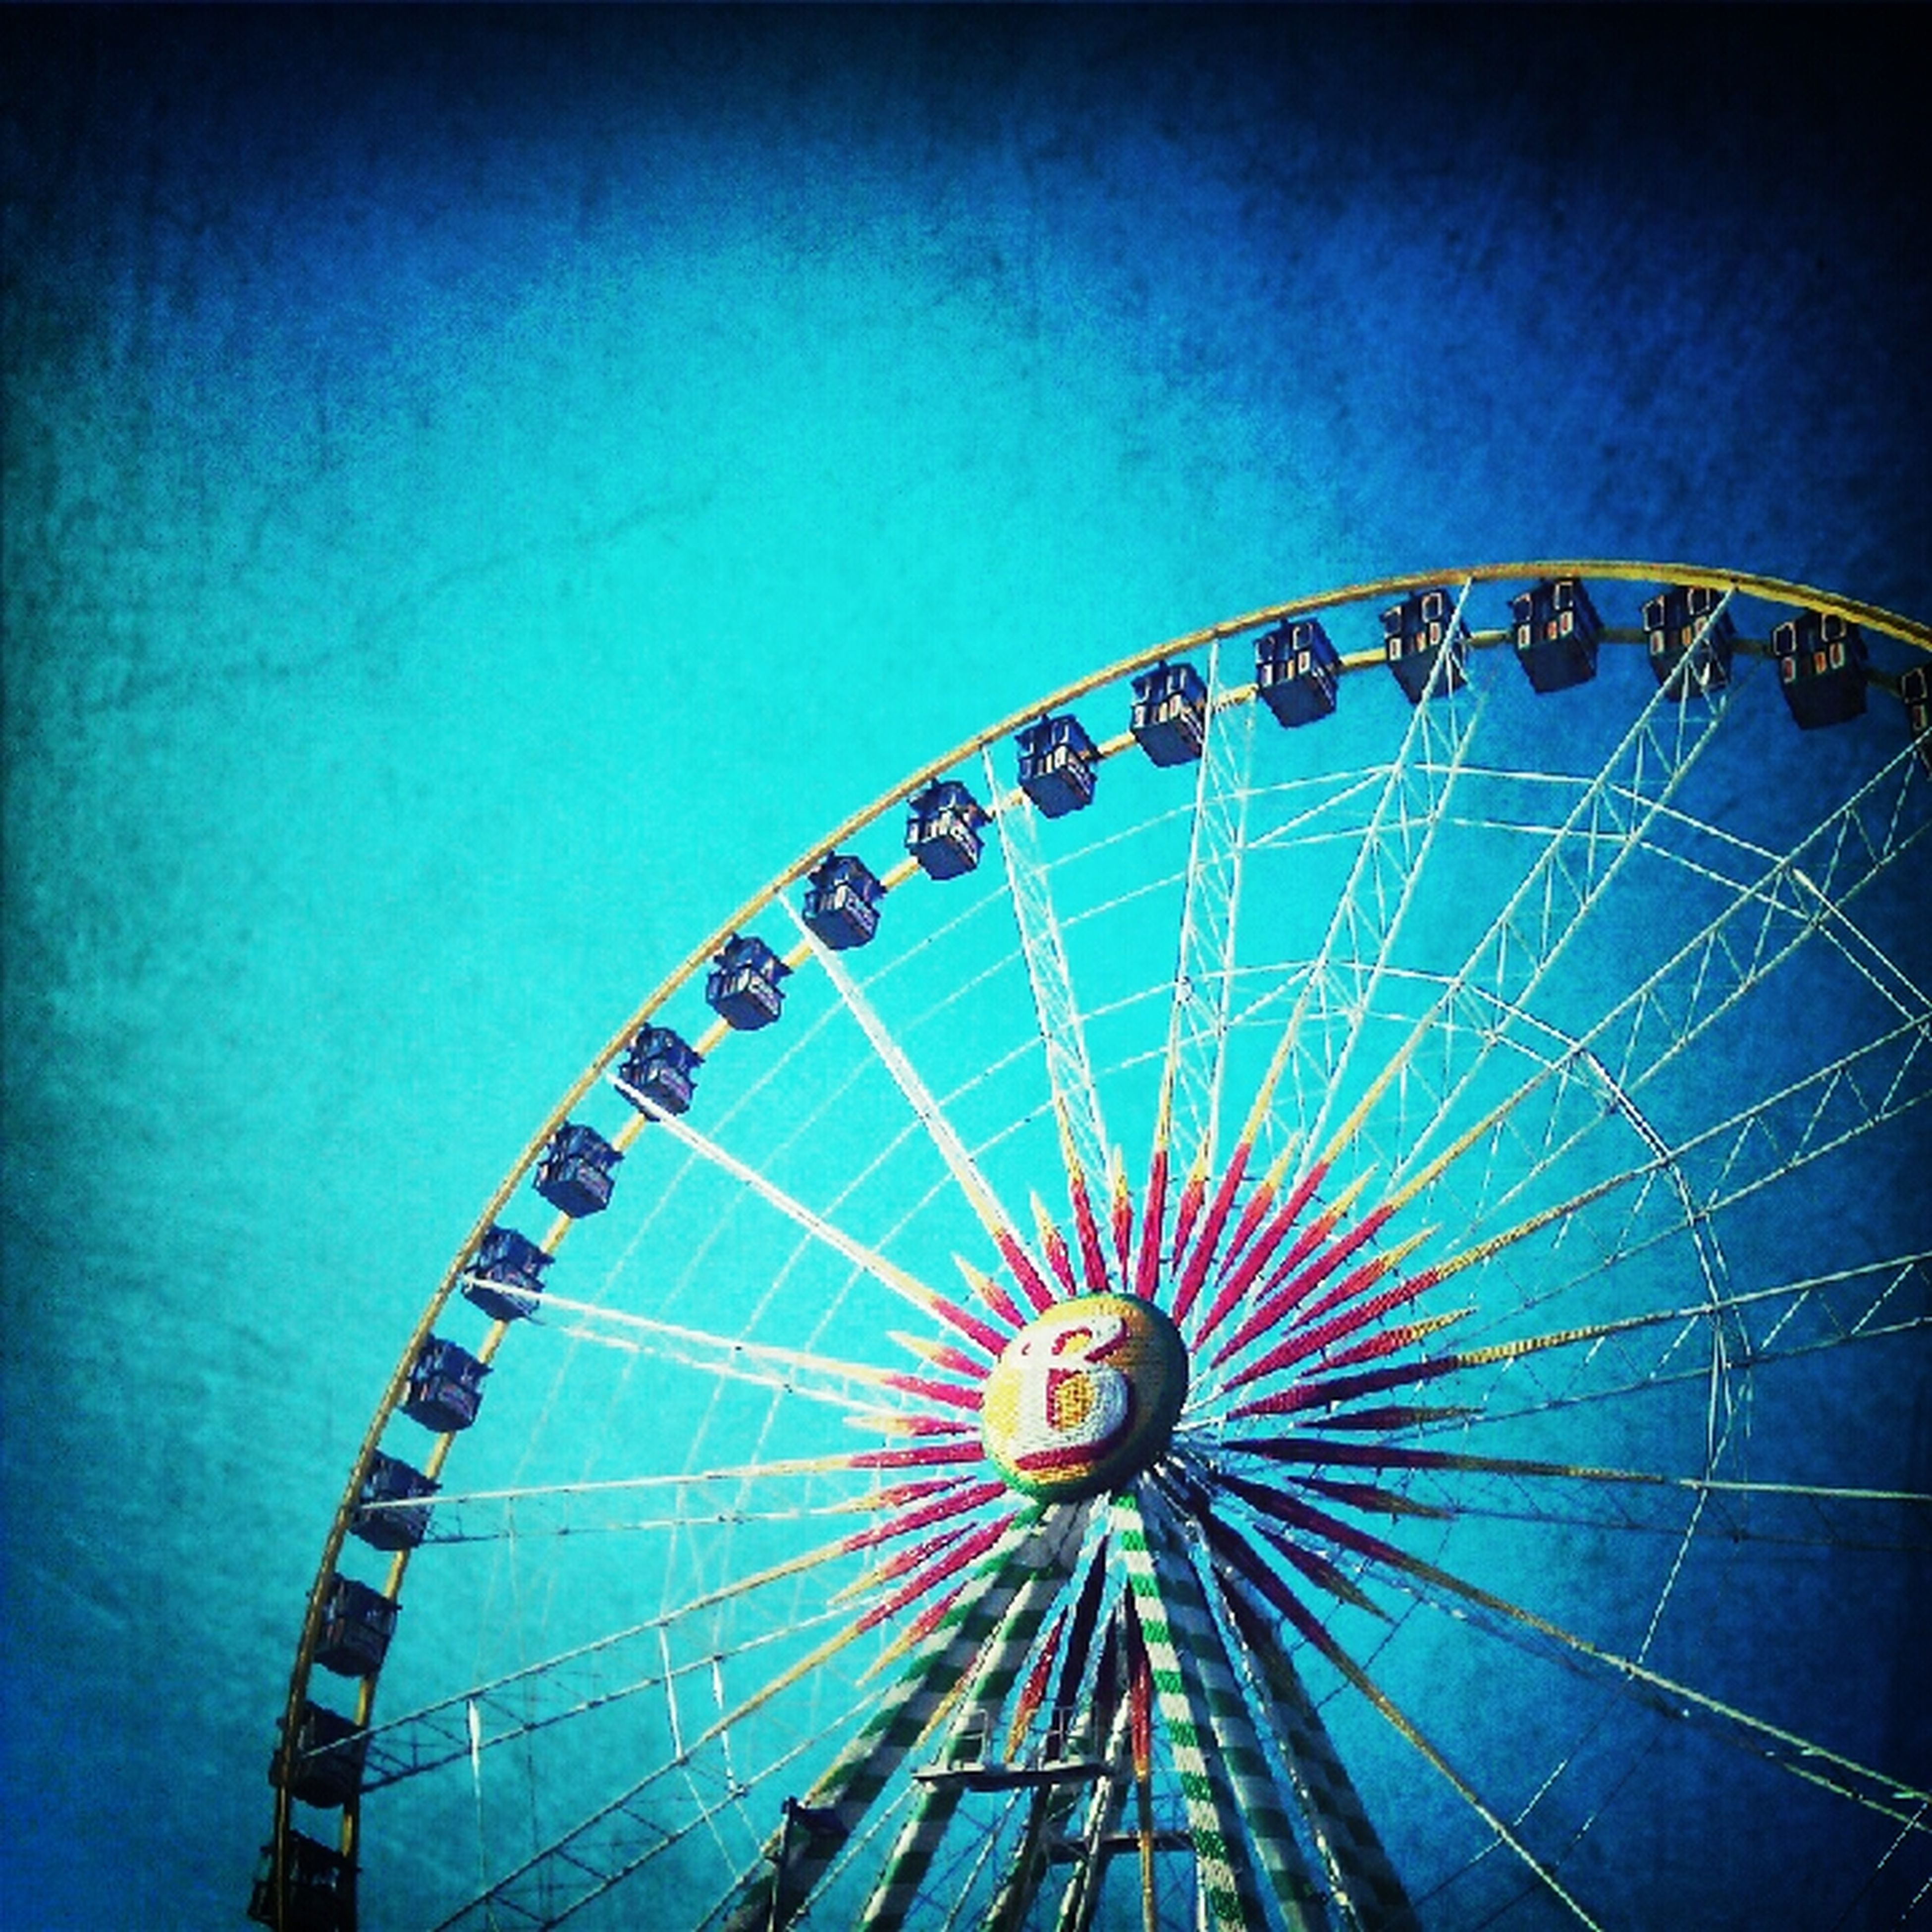 amusement park, ferris wheel, amusement park ride, arts culture and entertainment, low angle view, fun, blue, sky, clear sky, multi colored, enjoyment, leisure activity, circle, big wheel, outdoors, large, fairground, no people, pattern, fairground ride